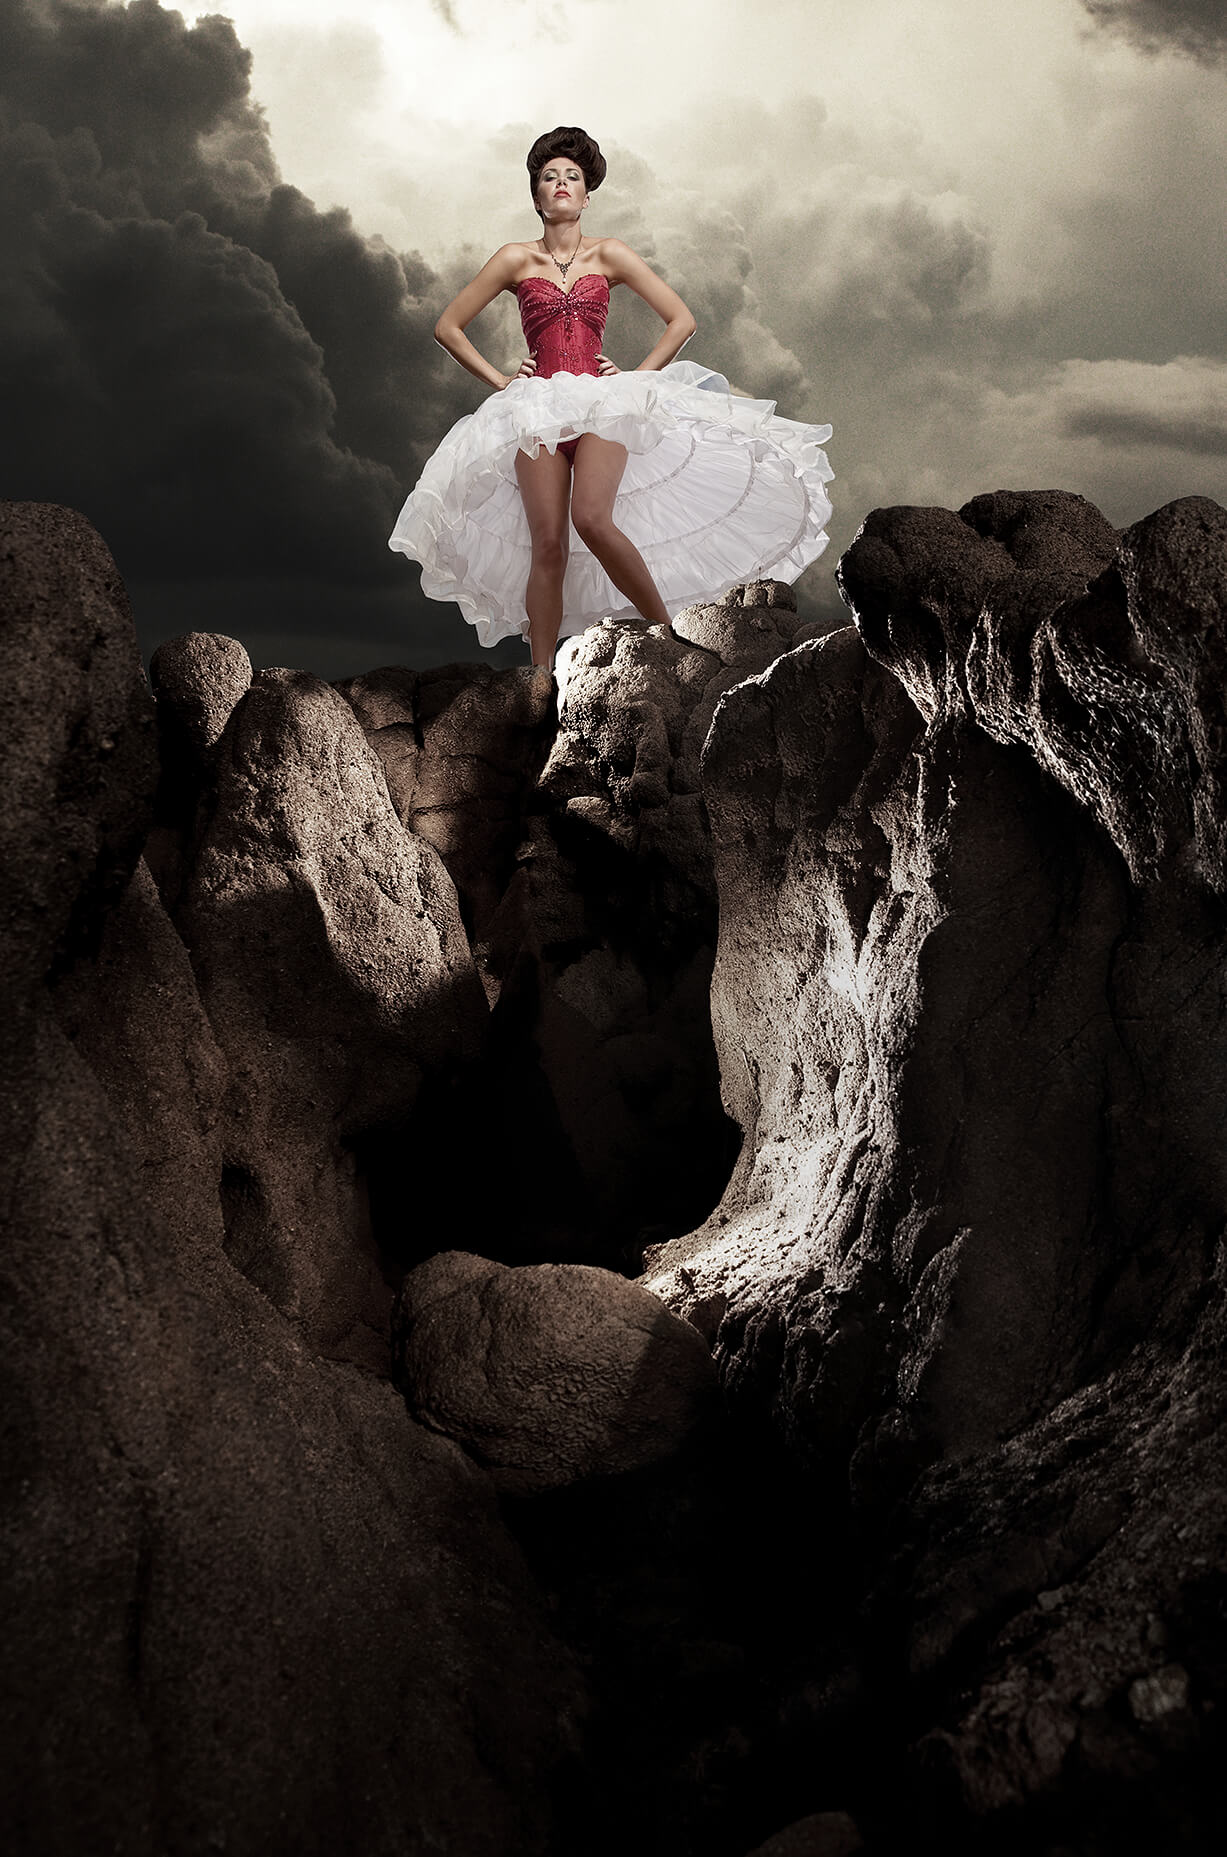 Surreal fashion photograph of girl in hooped dress and corset